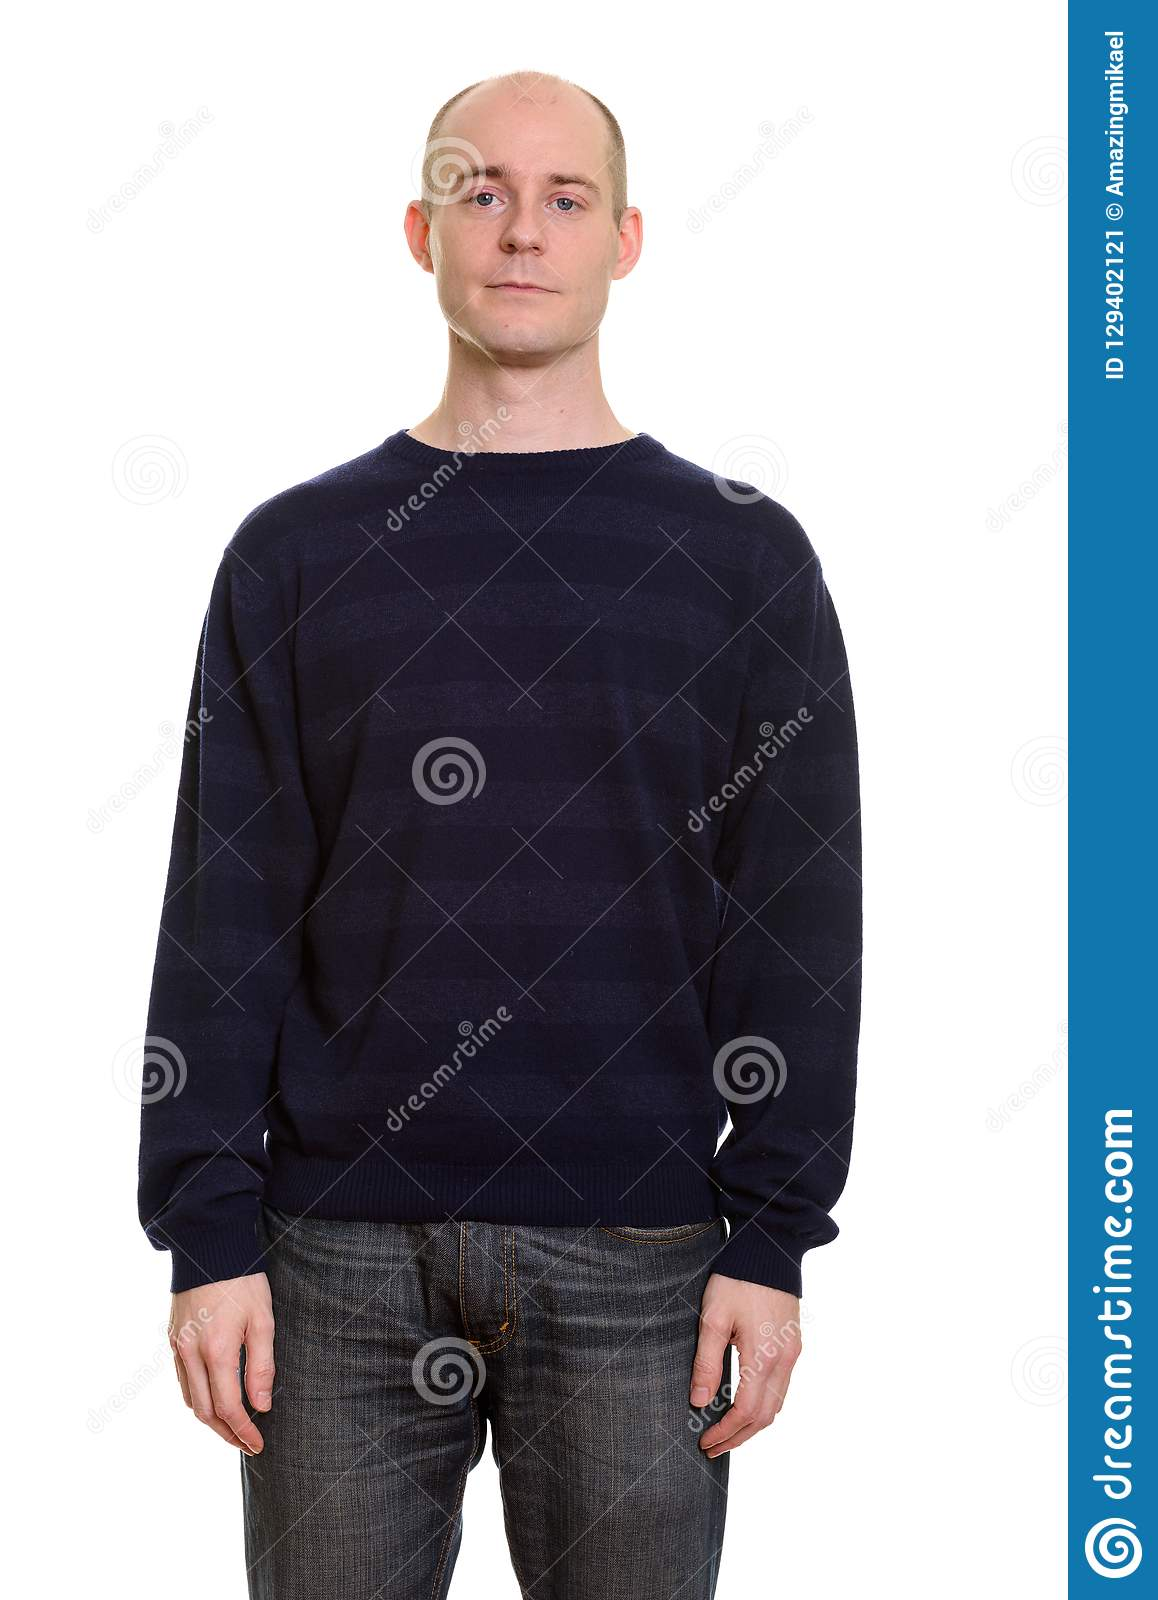 Bald Caucasian man standing and looking at camera. Bald Caucasian man isolated against white background stock image